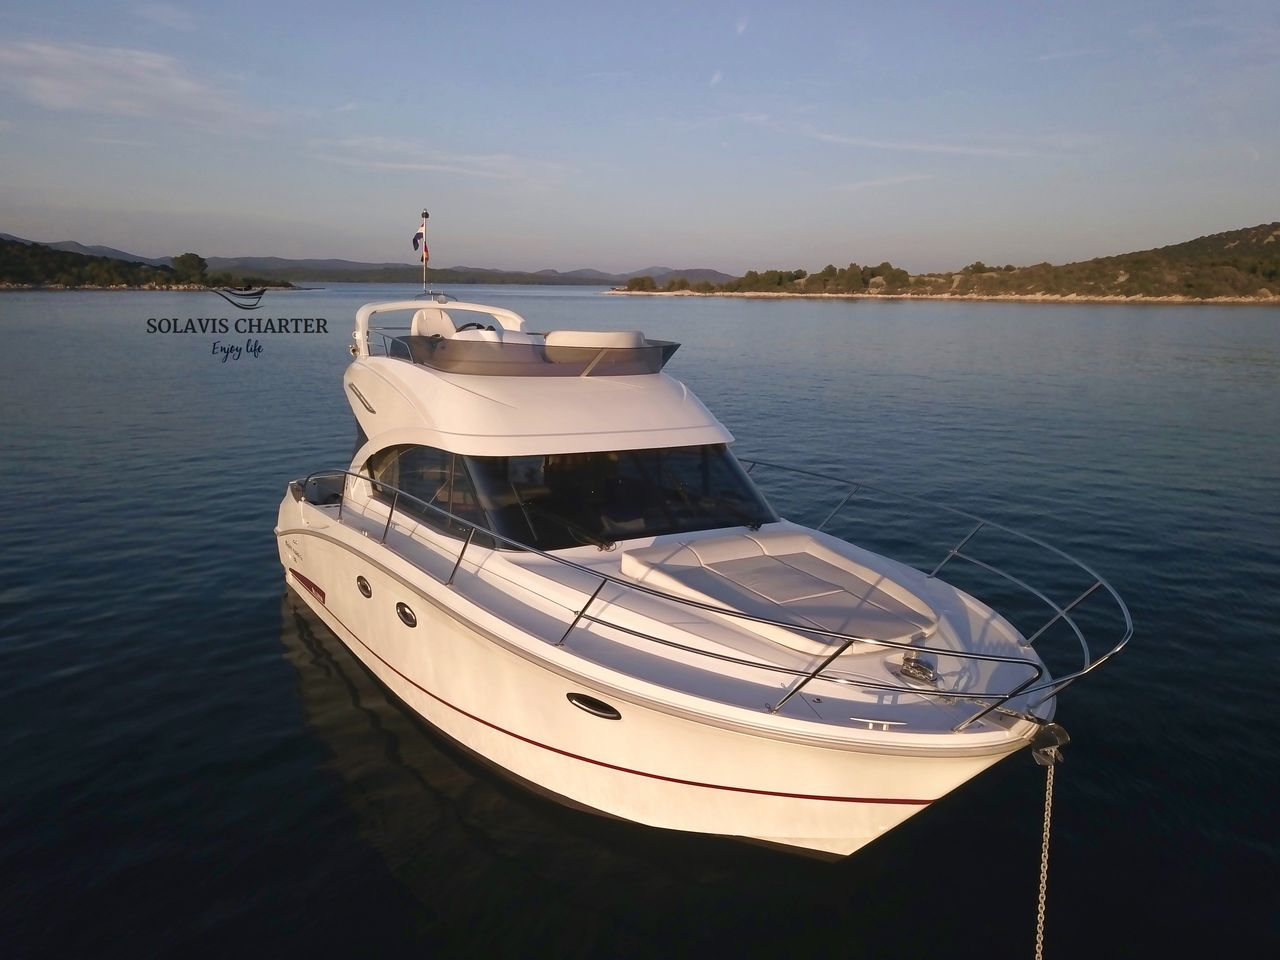 Antares 36 by Seadream Charter